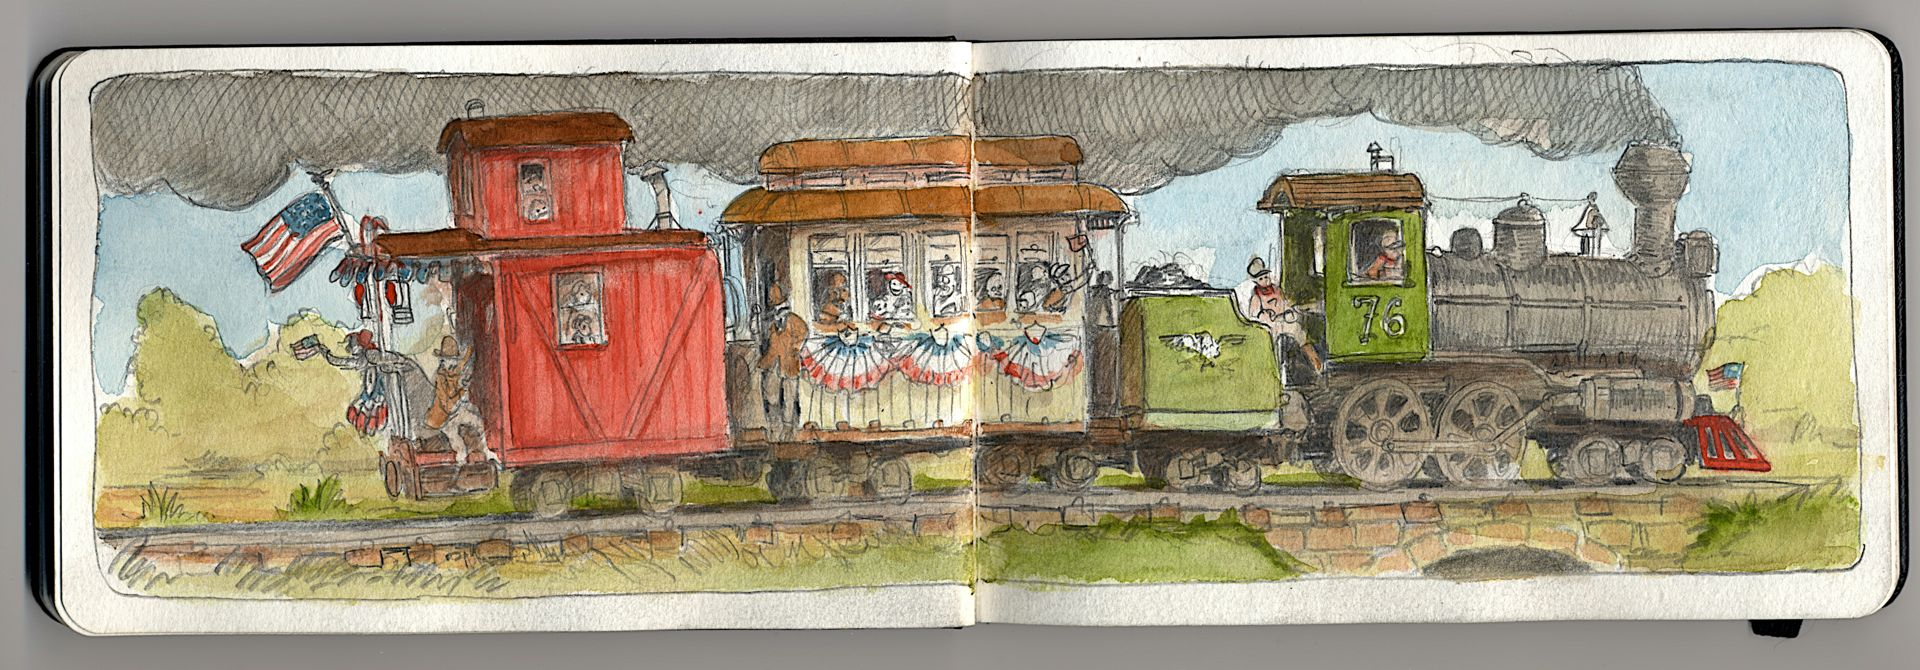 A very patriotic steam train drawing.